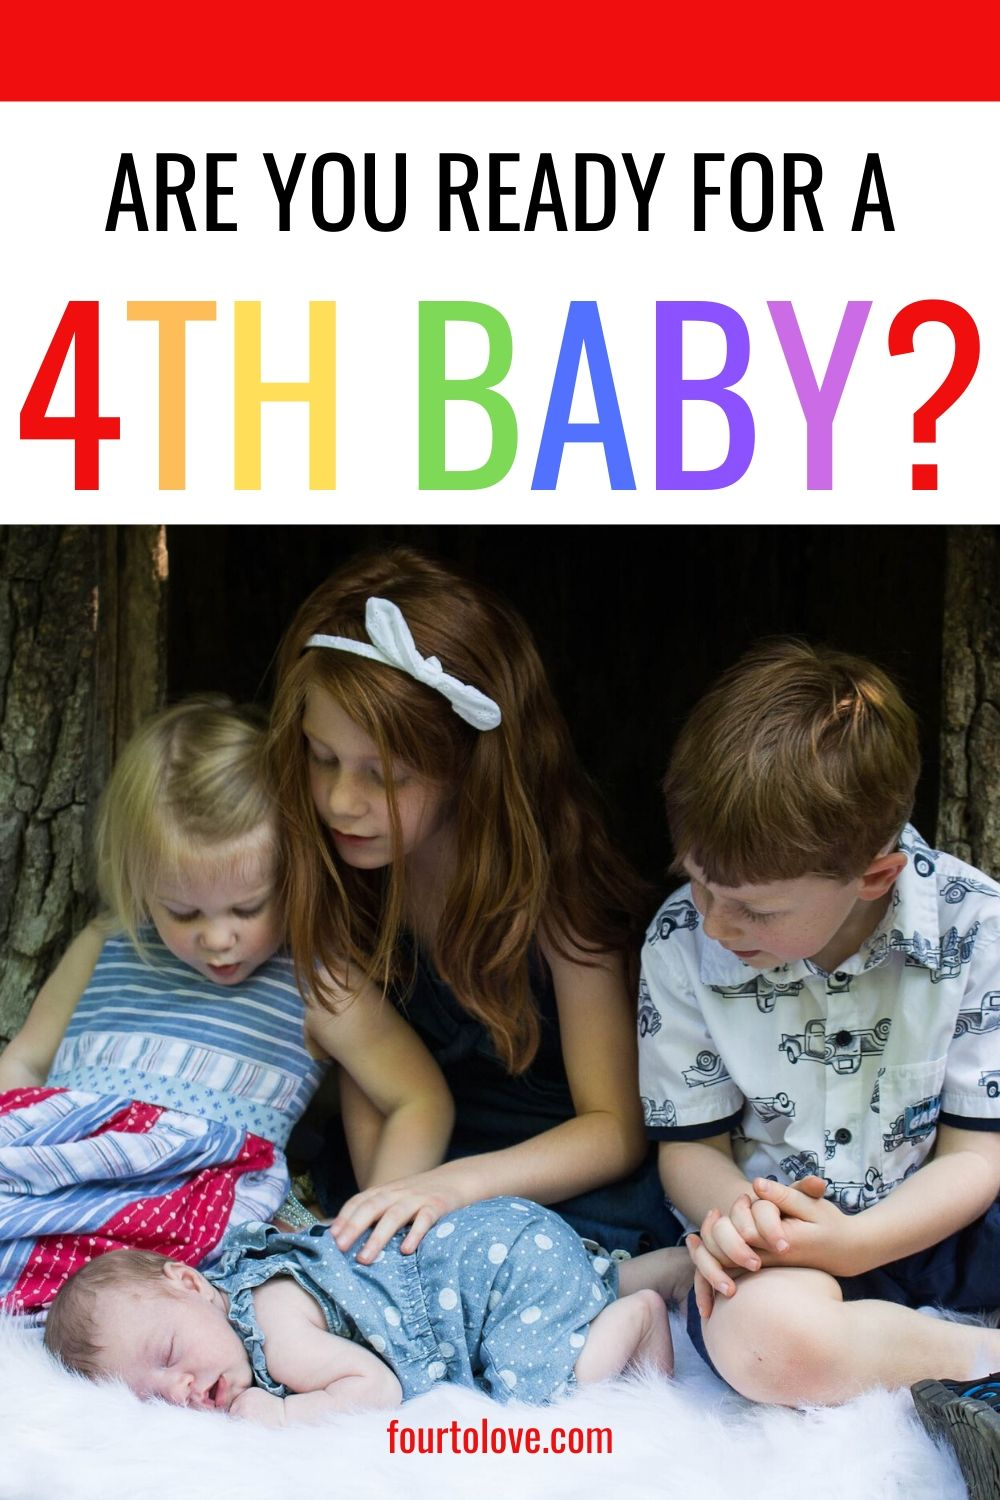 Should you have a fourth child?